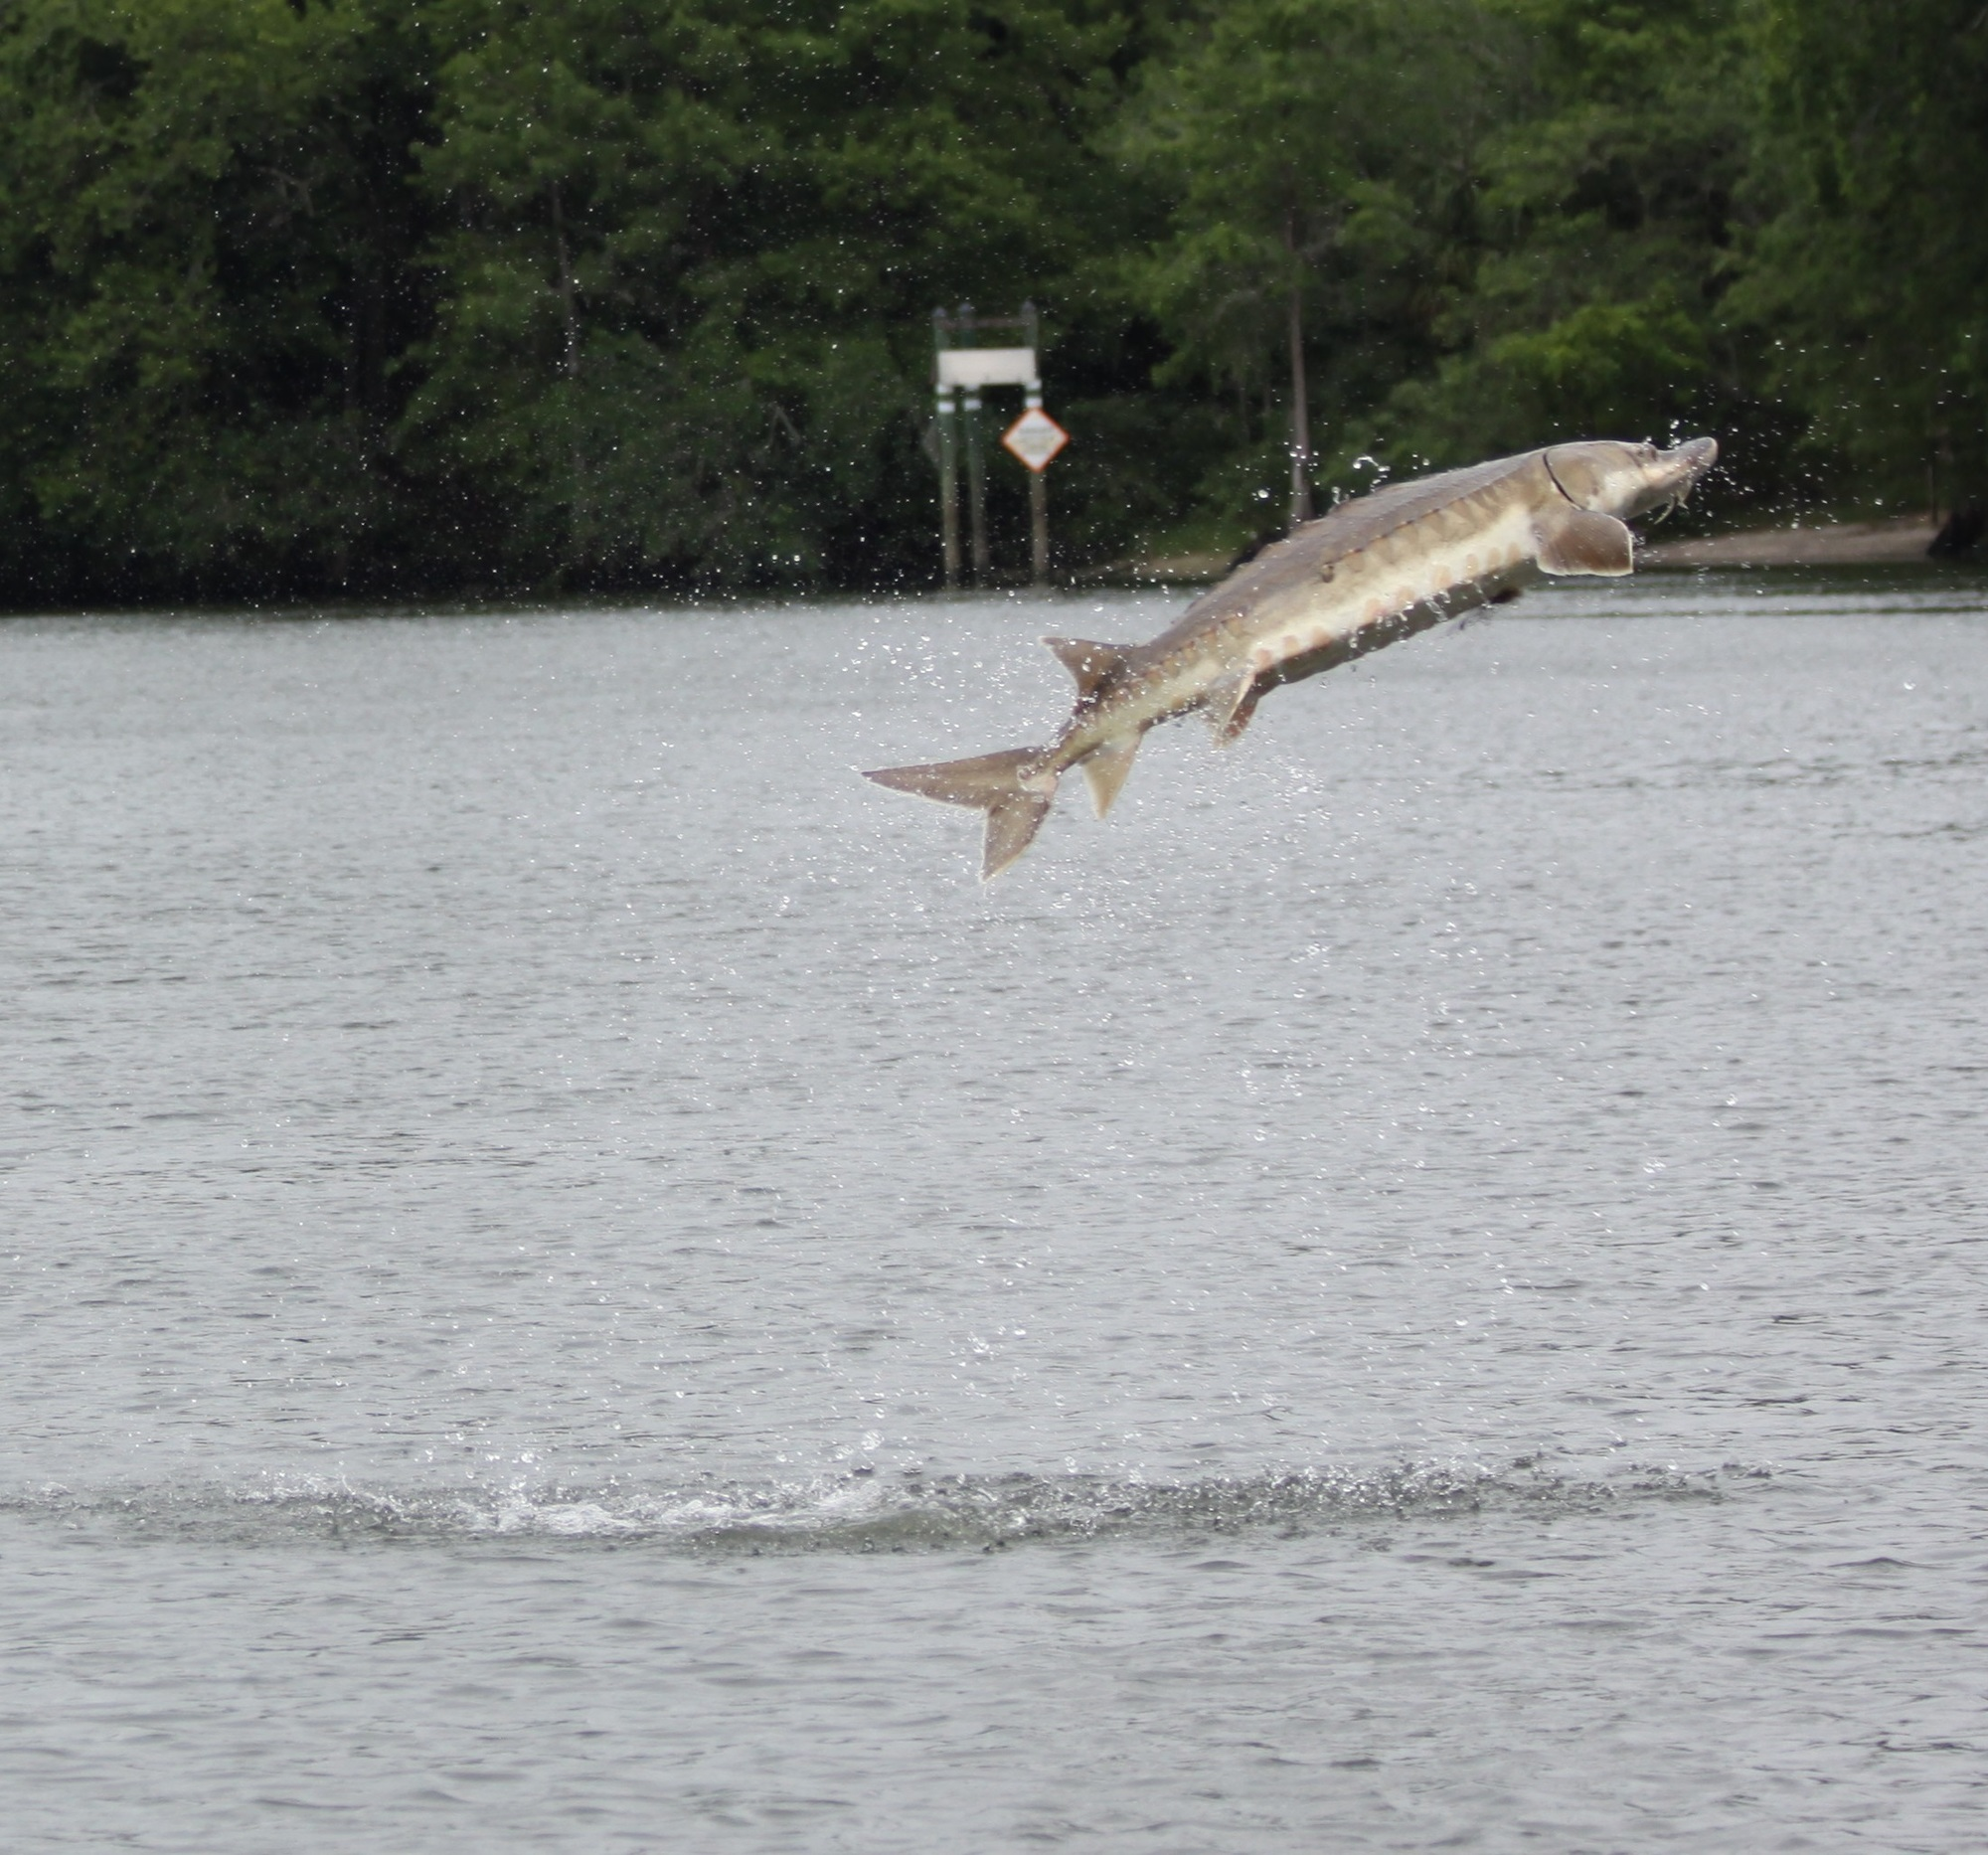 Sturgeon jumping out of the Suwannee River